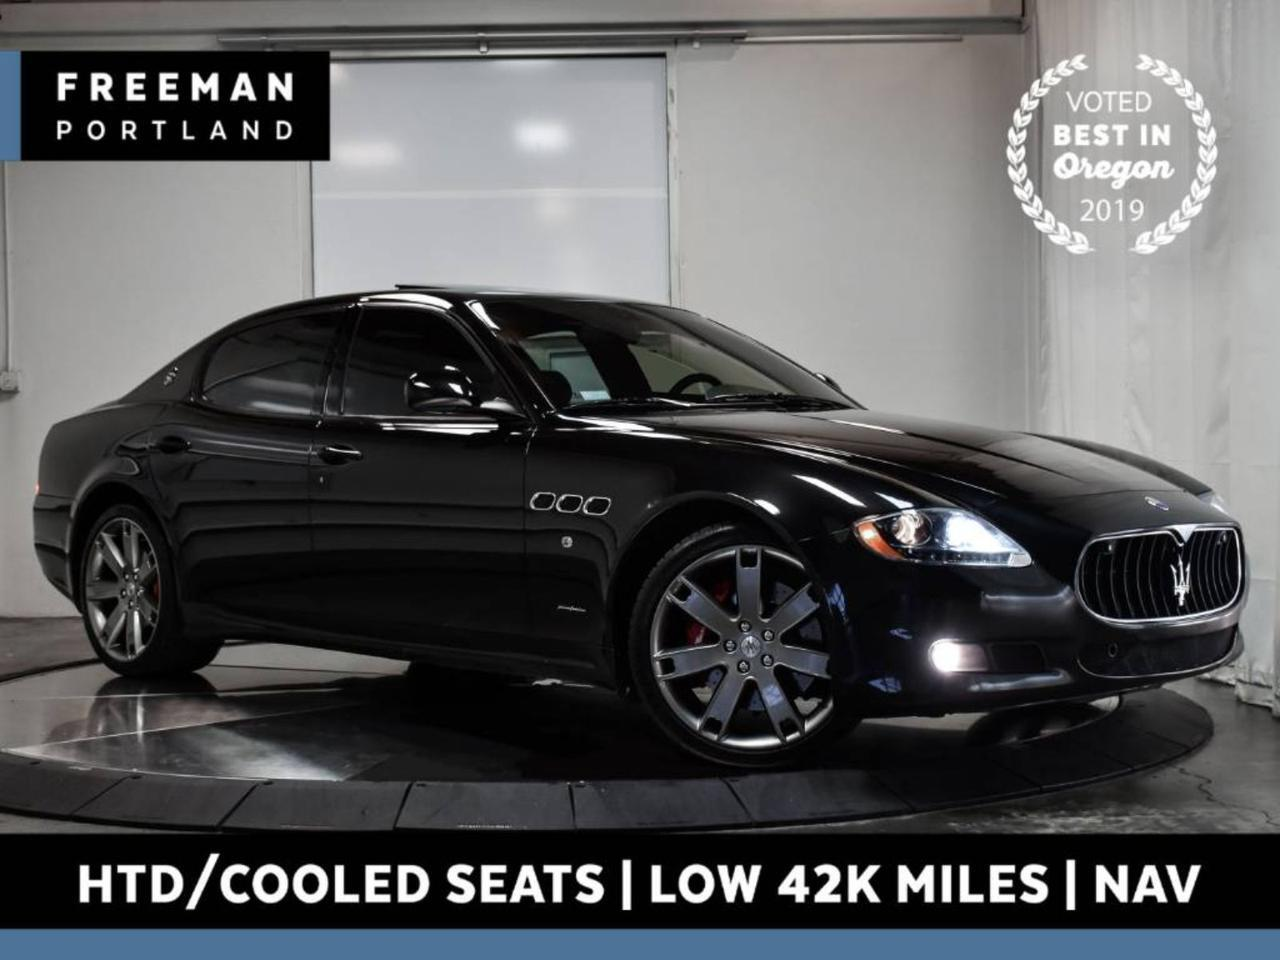 2013 Maserati Quattroporte S Navigation Heated & Cooled Seats 425 HP Portland OR